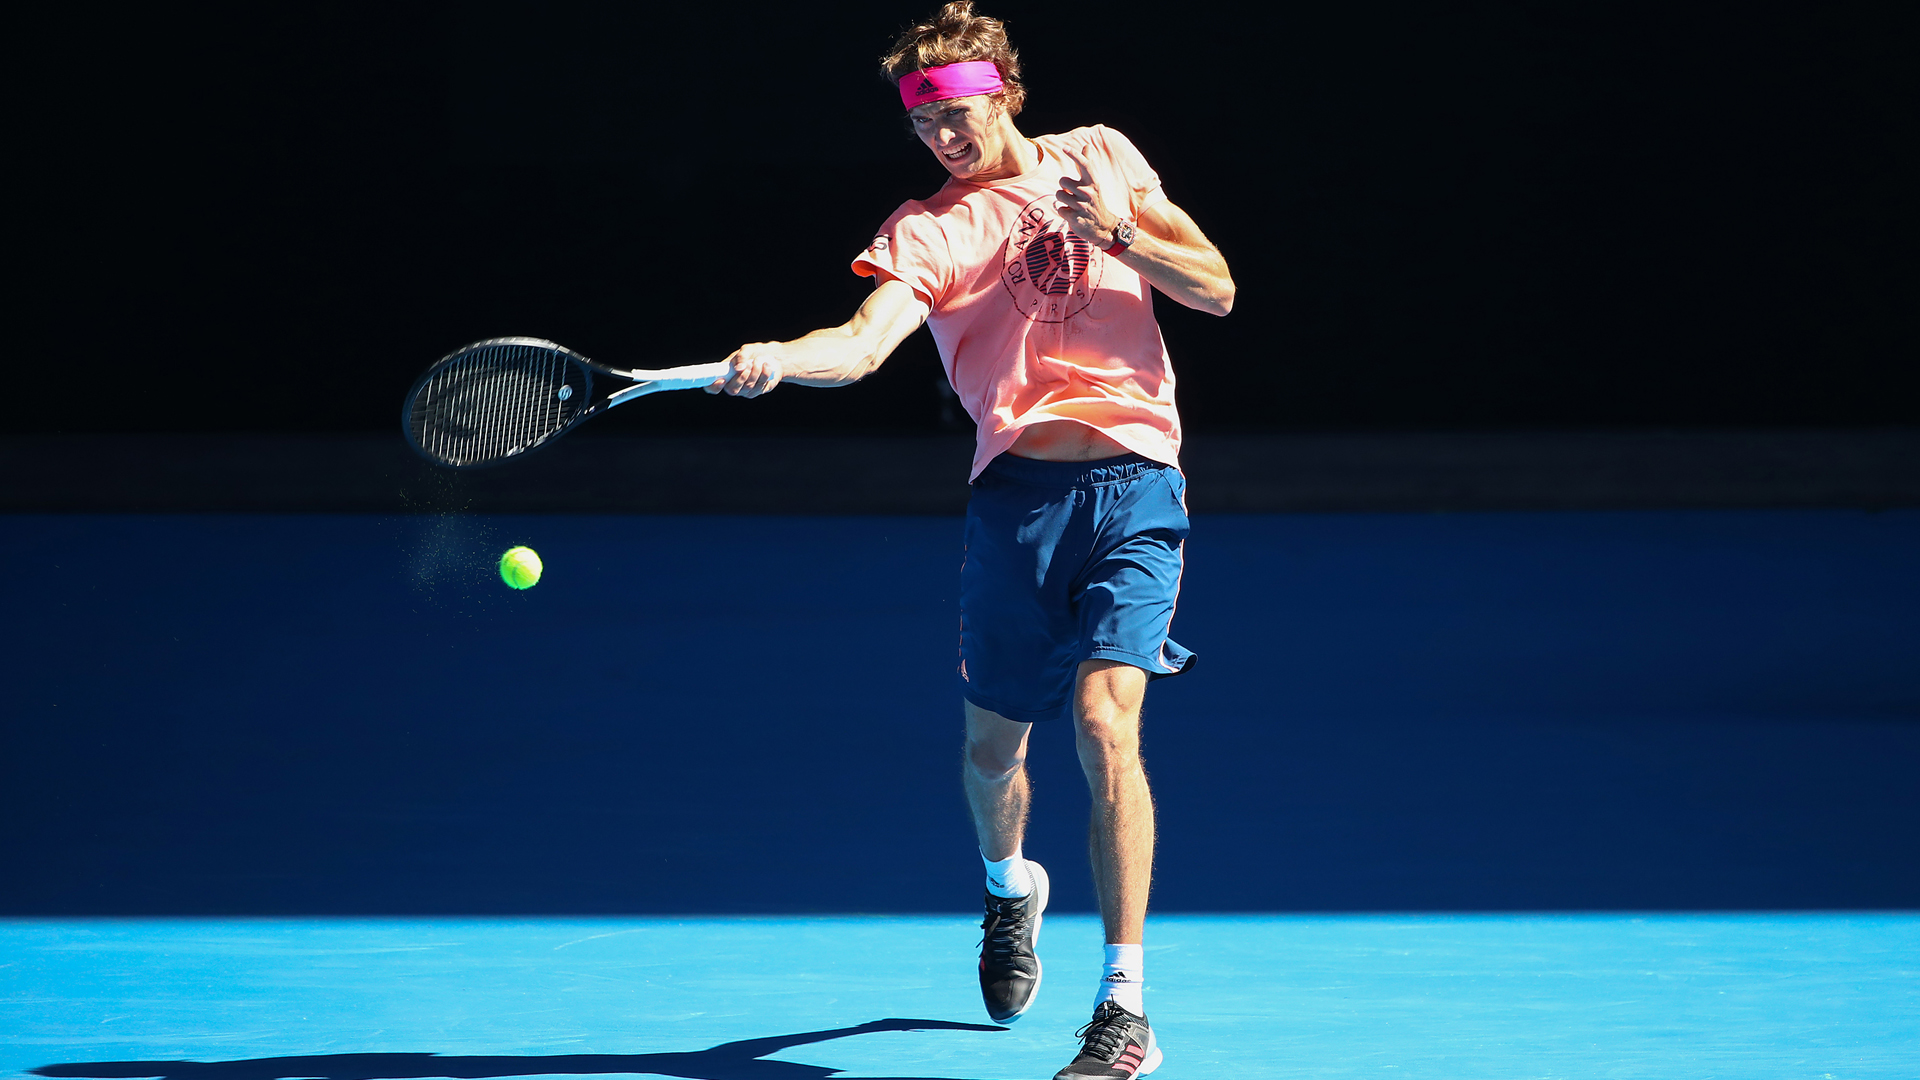 Alexander Zverev insisted his ankle injury would not be an issue at the Australian Open.